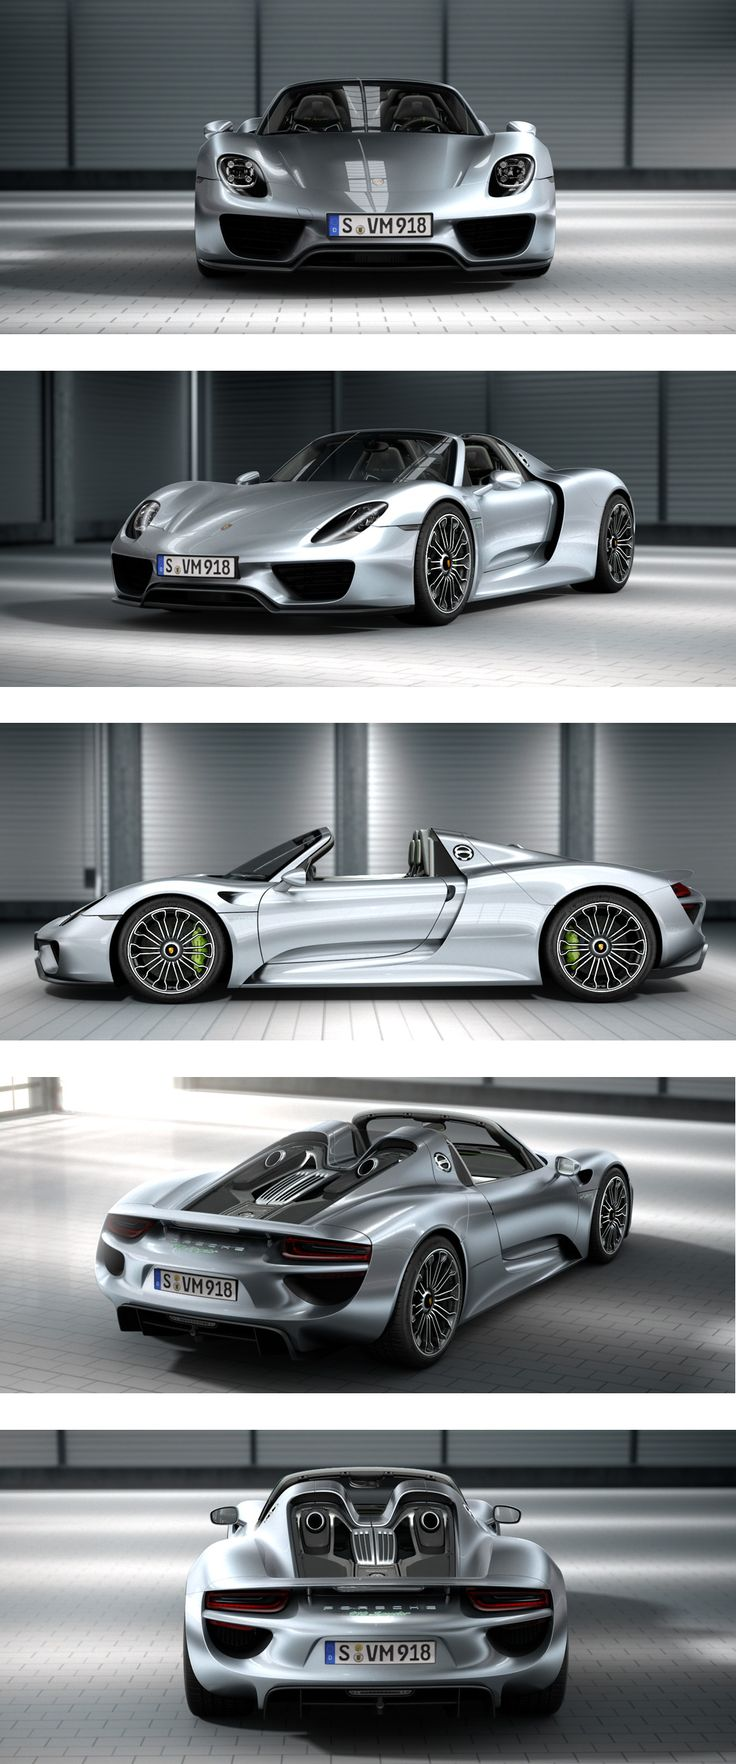 Hybrid's like this breathtaking Porsche 918 Spyder are the future. A $125,000 hybrid!